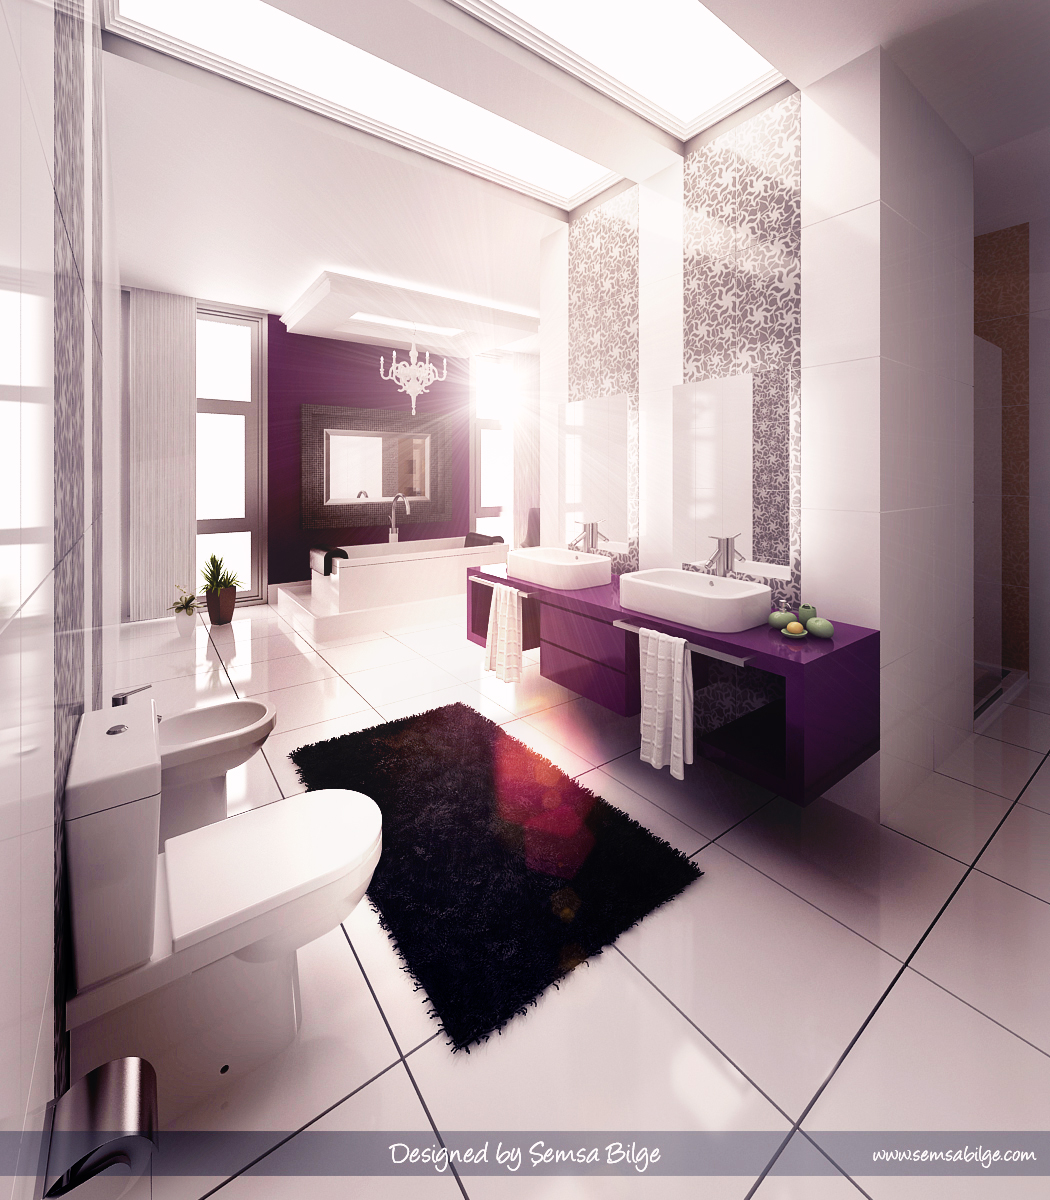 Inspiring bathroom designs for the soul for Bathroom decor inspiration